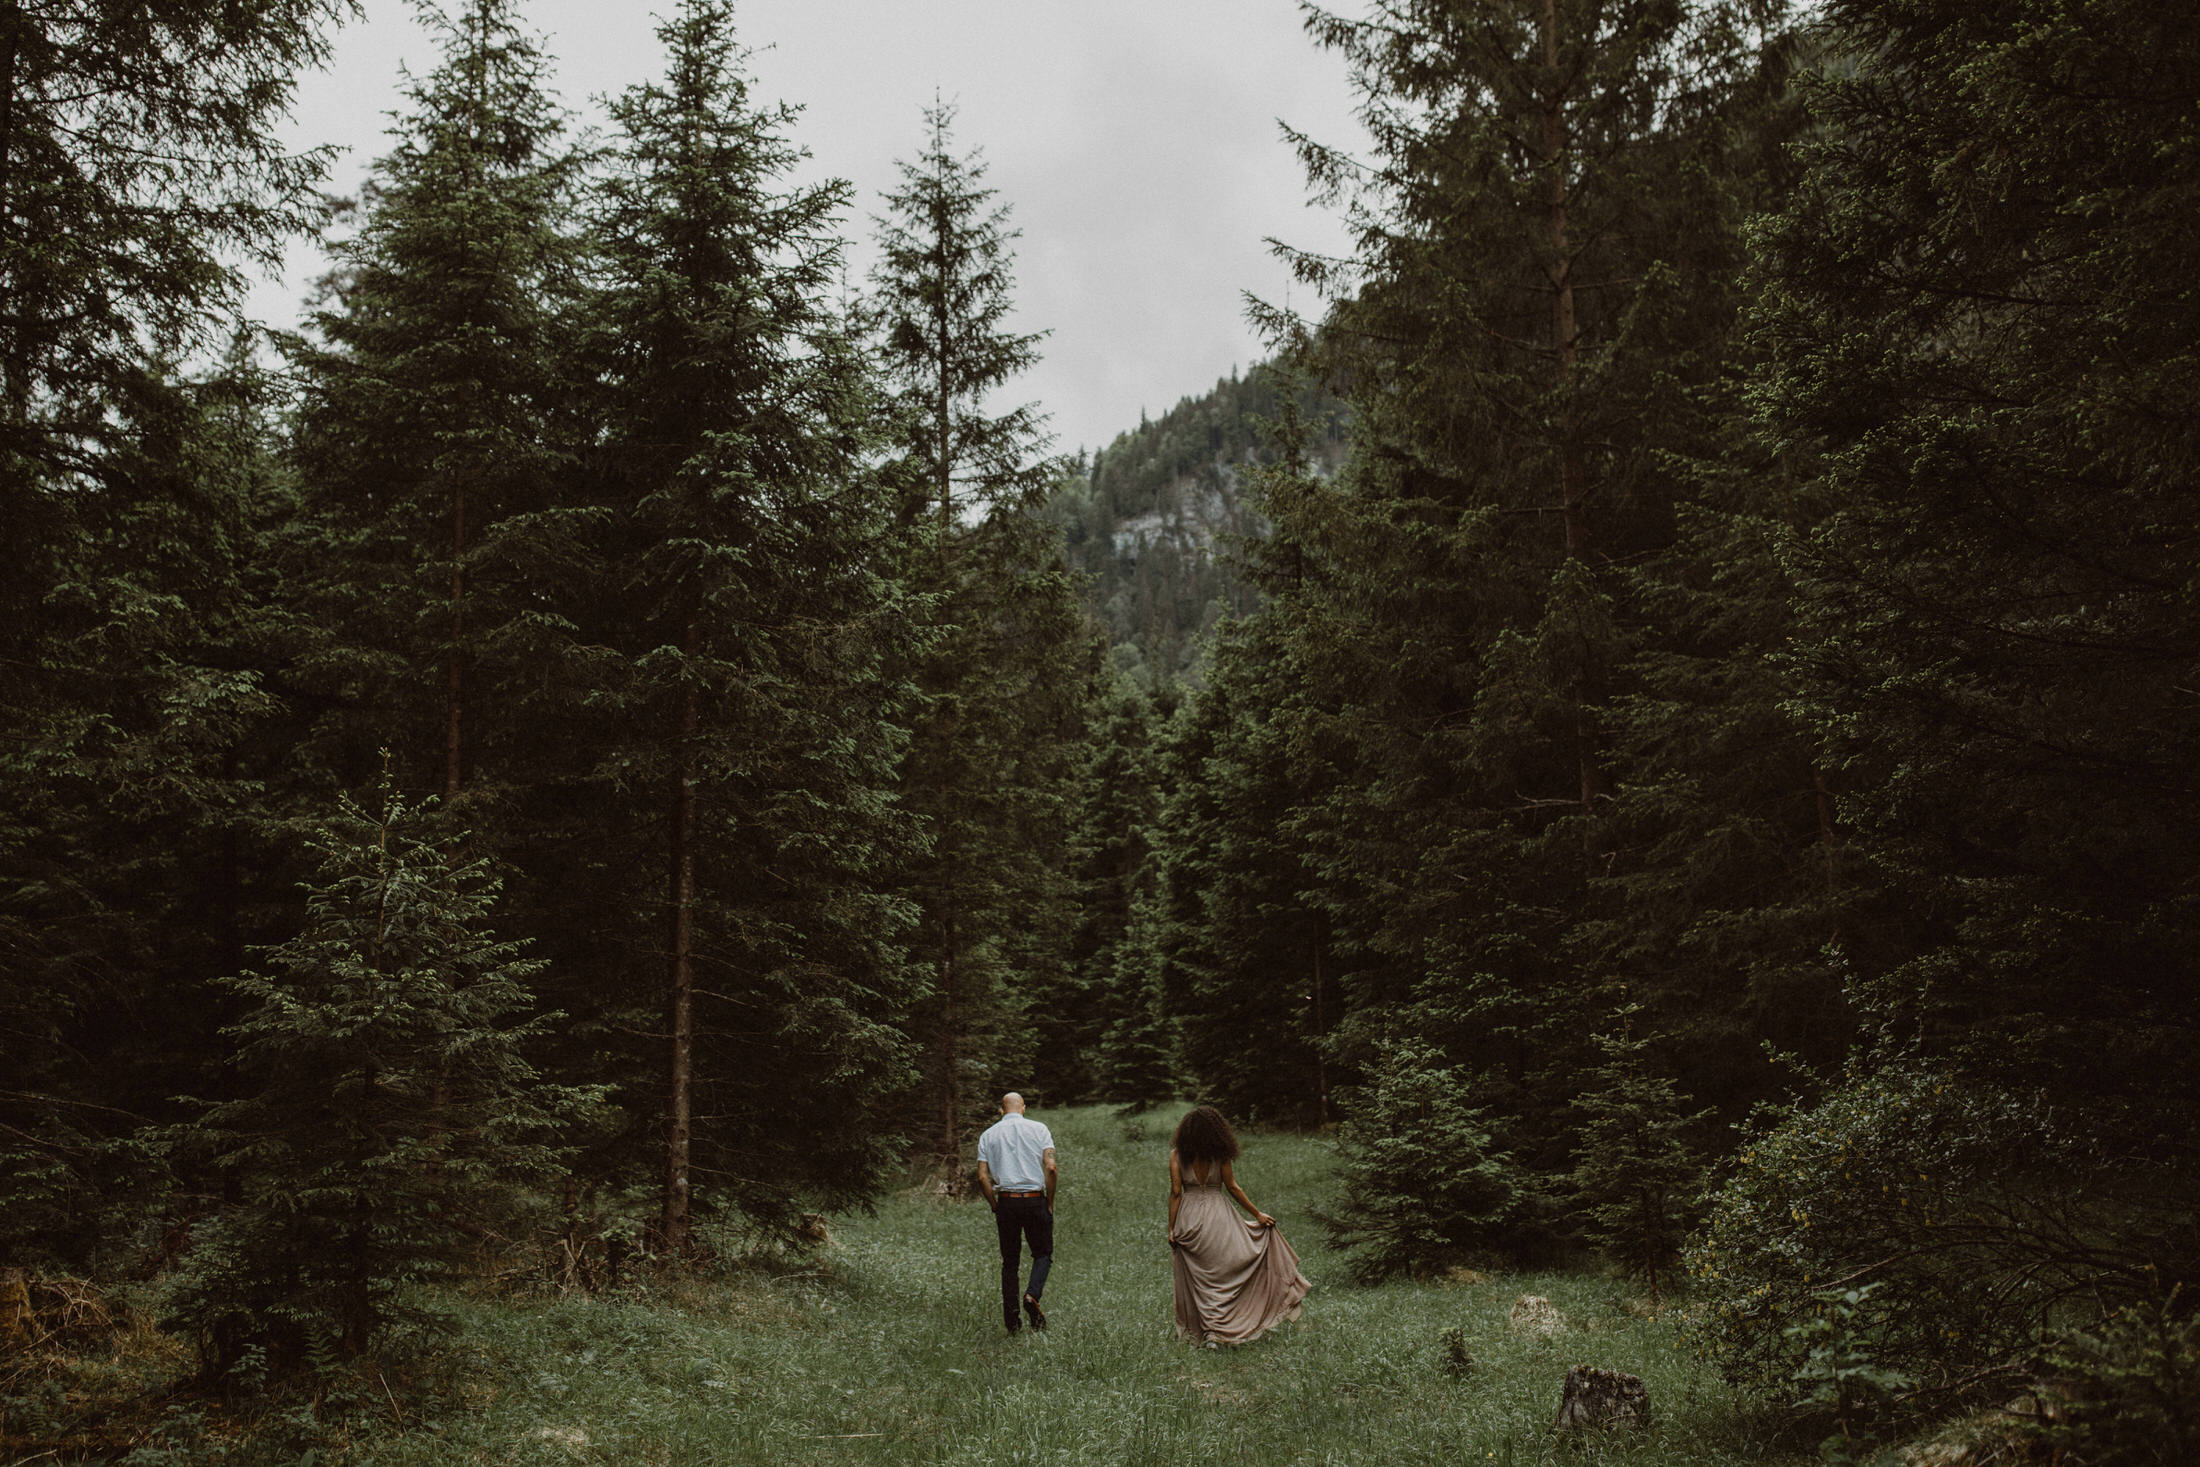 breanna-and-justin-engagement-photos-eibsee-garmisch-partenkirchen-0053